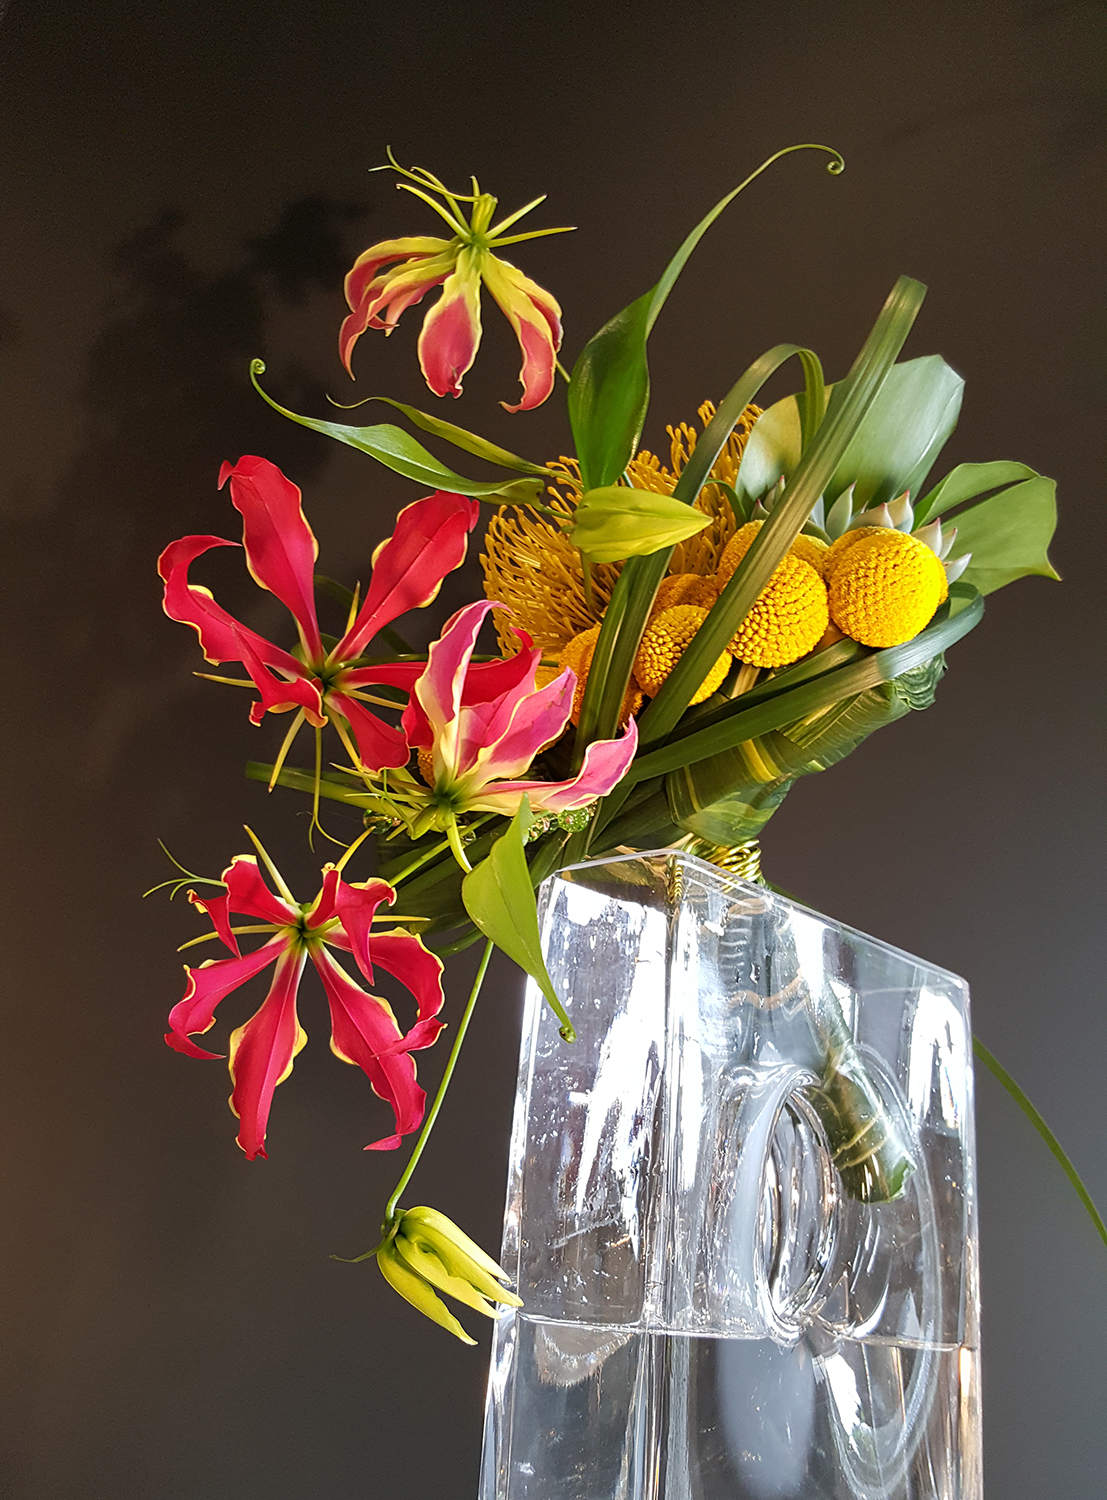 Exotic and funky vase of pink and yellow flowers